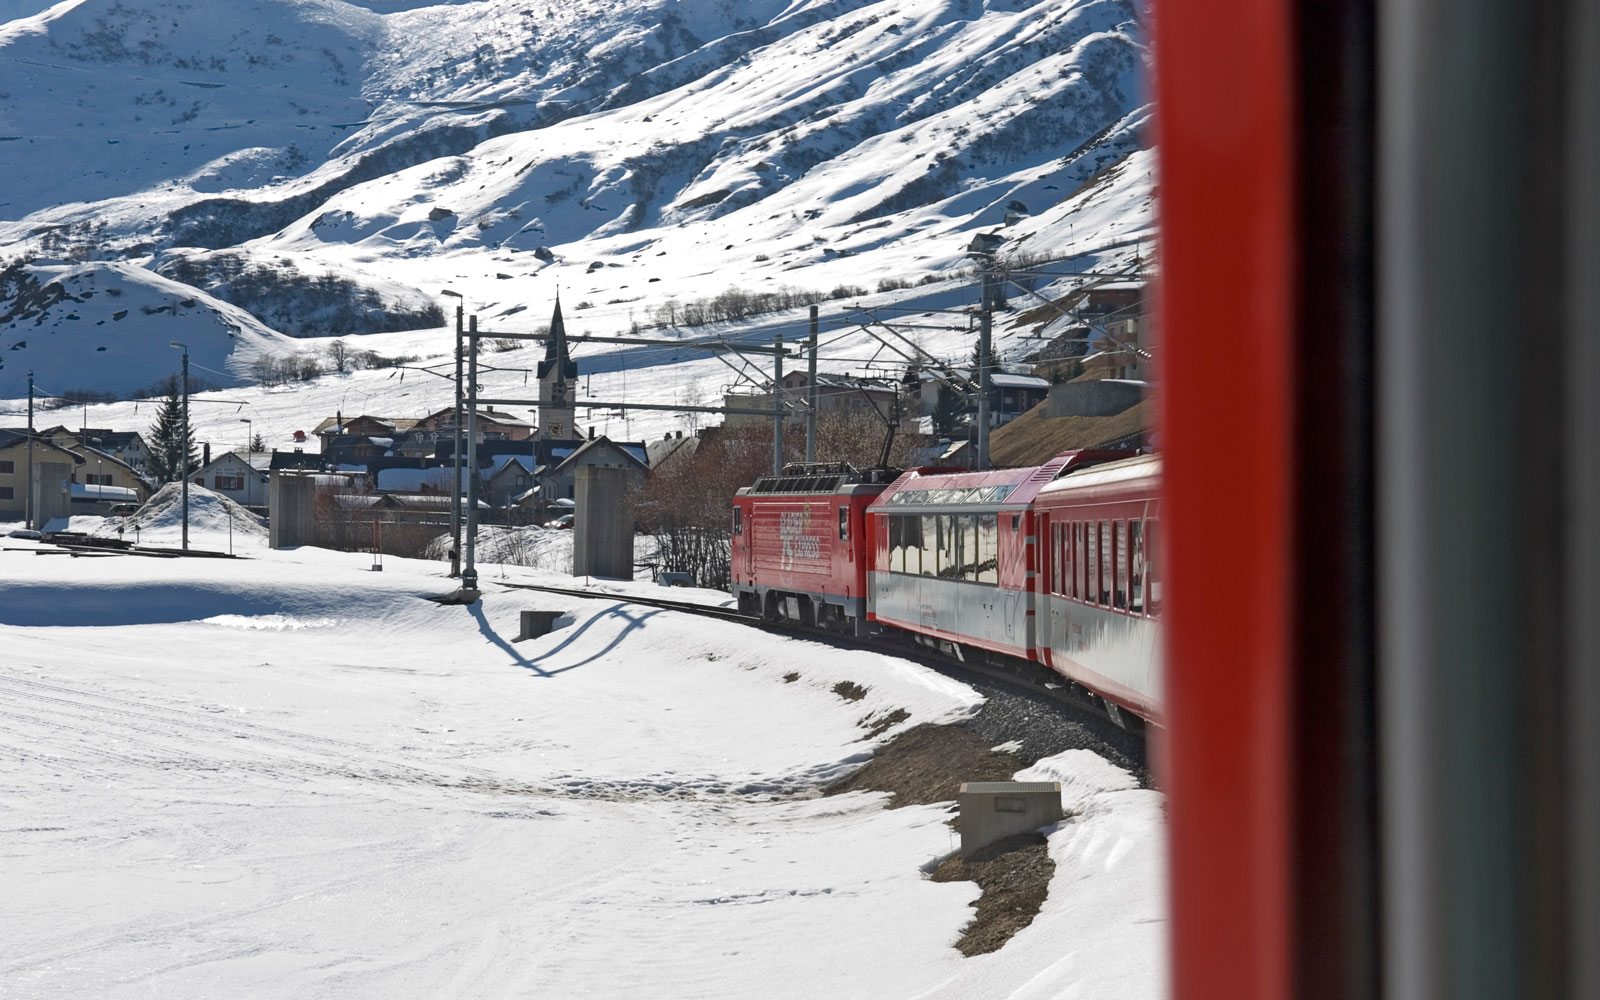 The Glacier Express train can be especially scenic when snow fills its route in the winter.